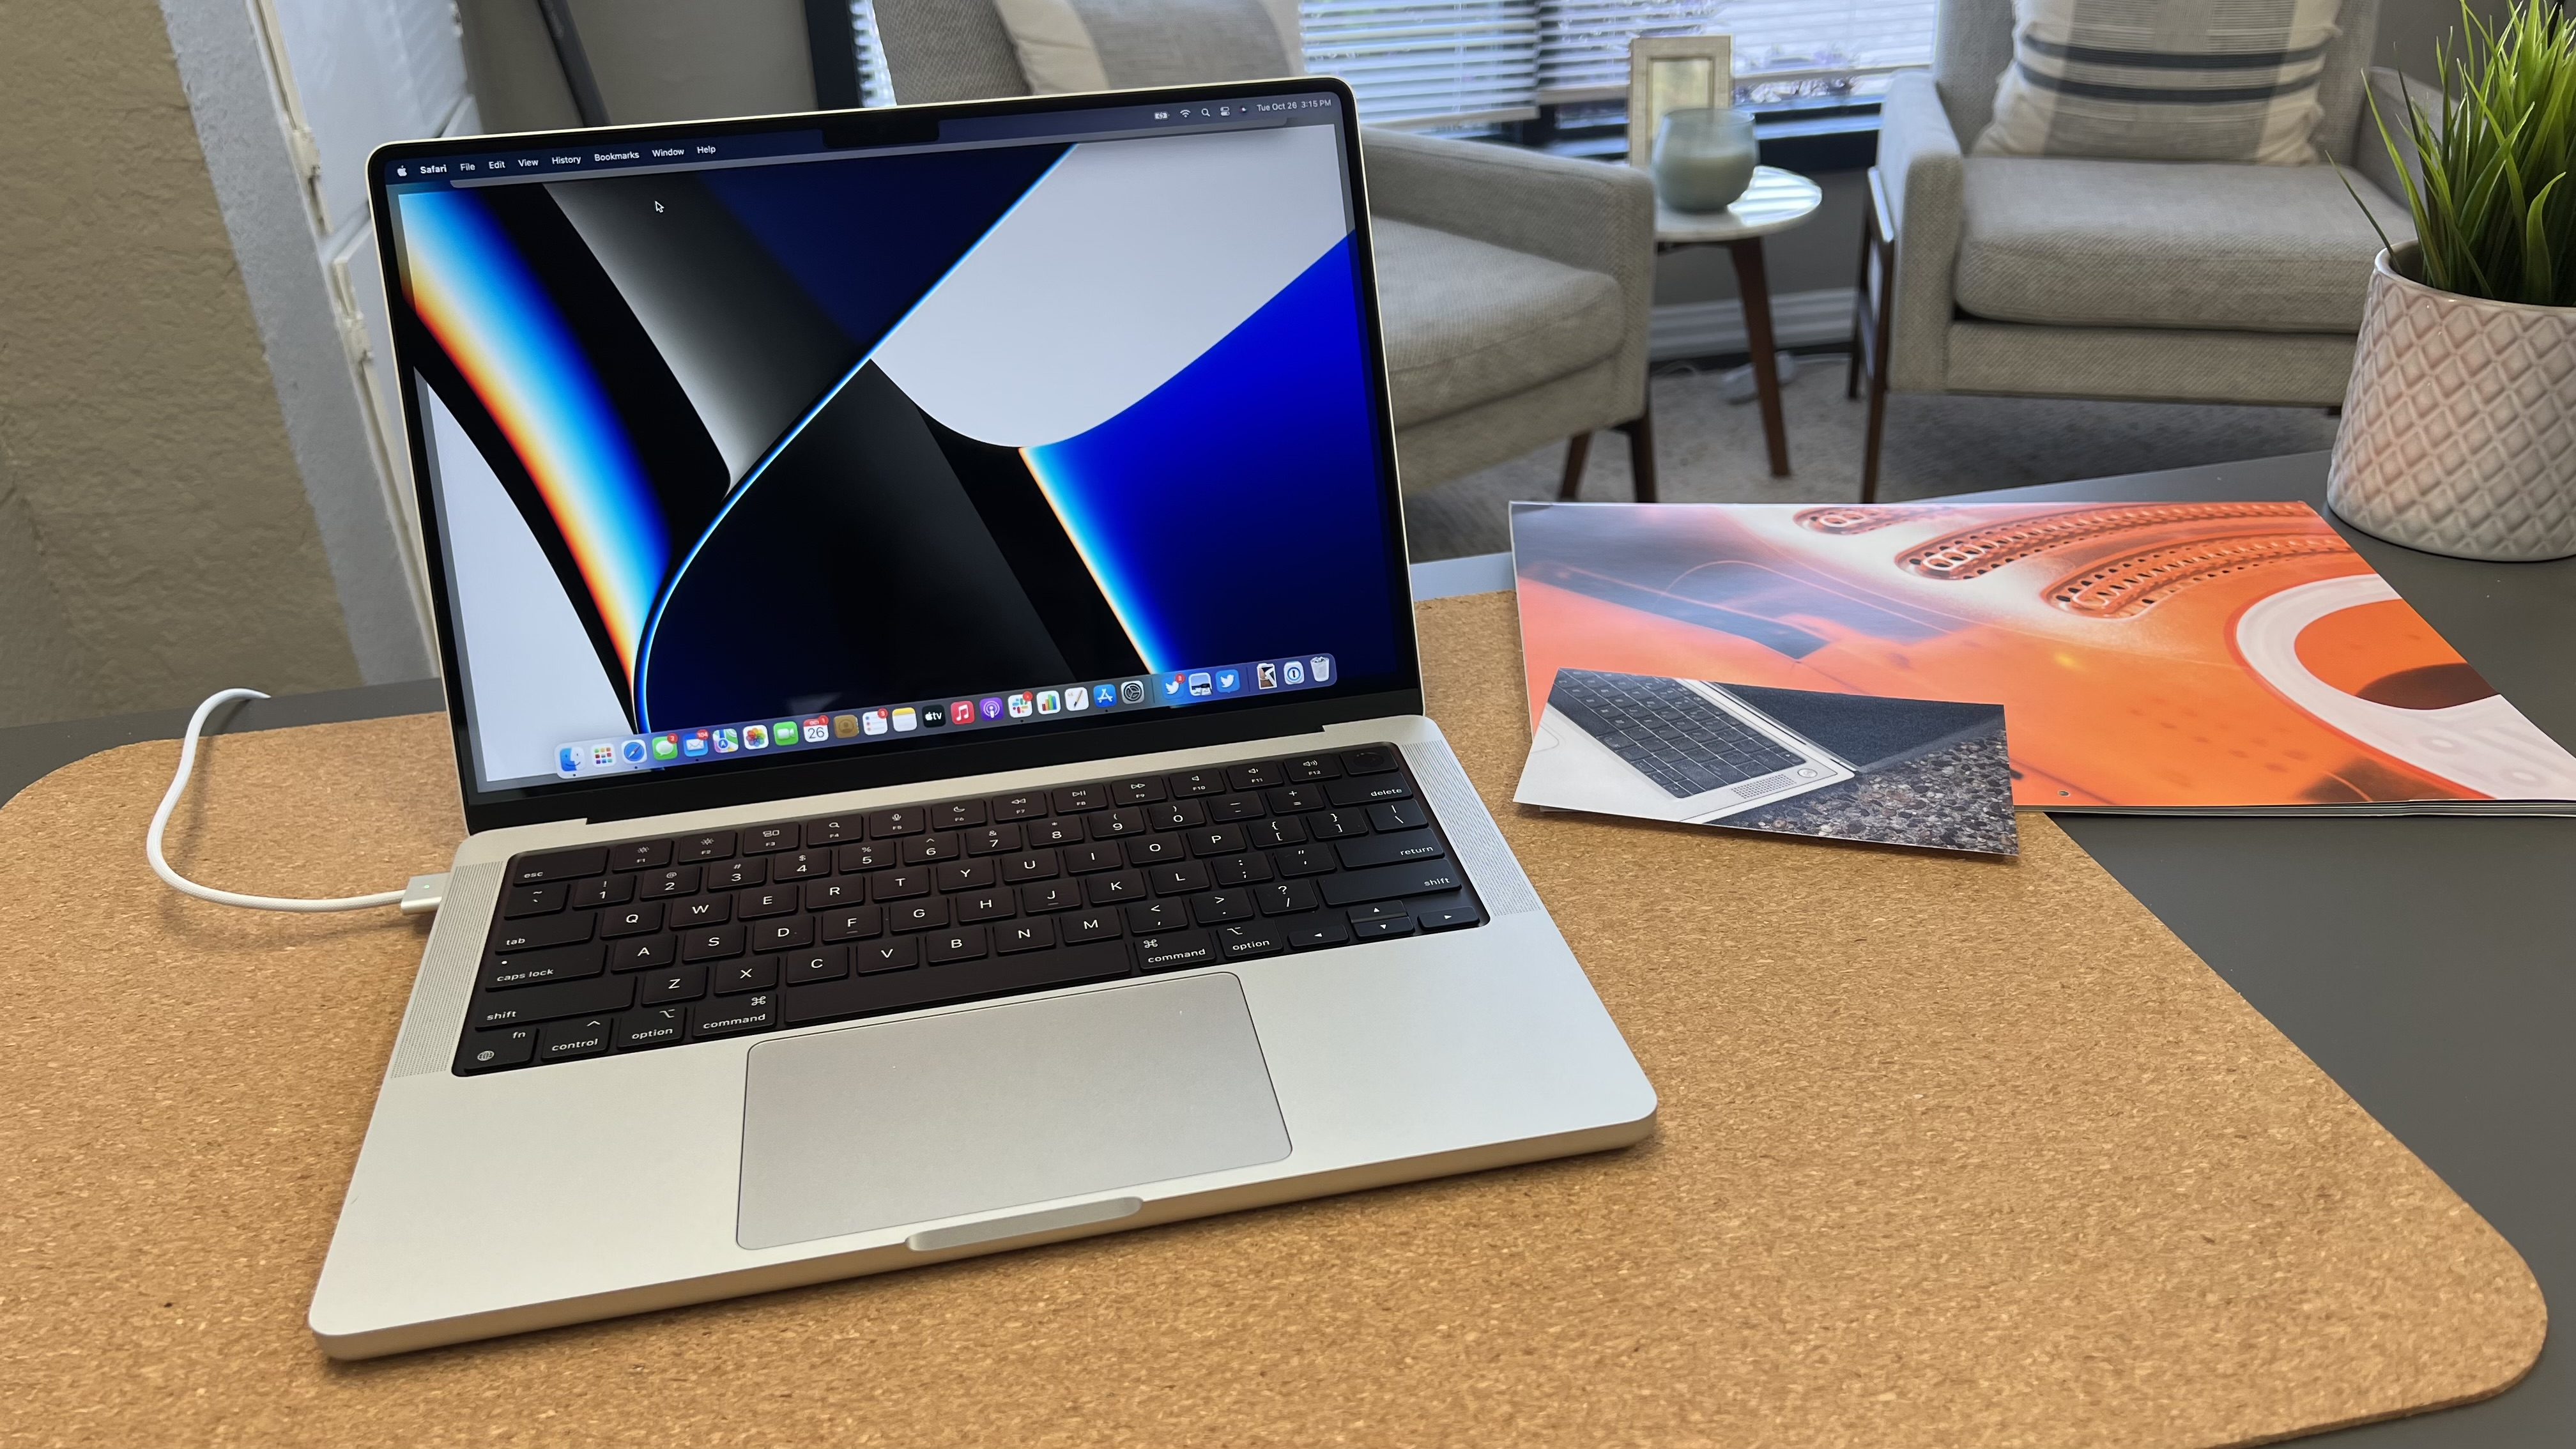 Hands-on: The new 14-inch MacBook Pro is a stunning return to form